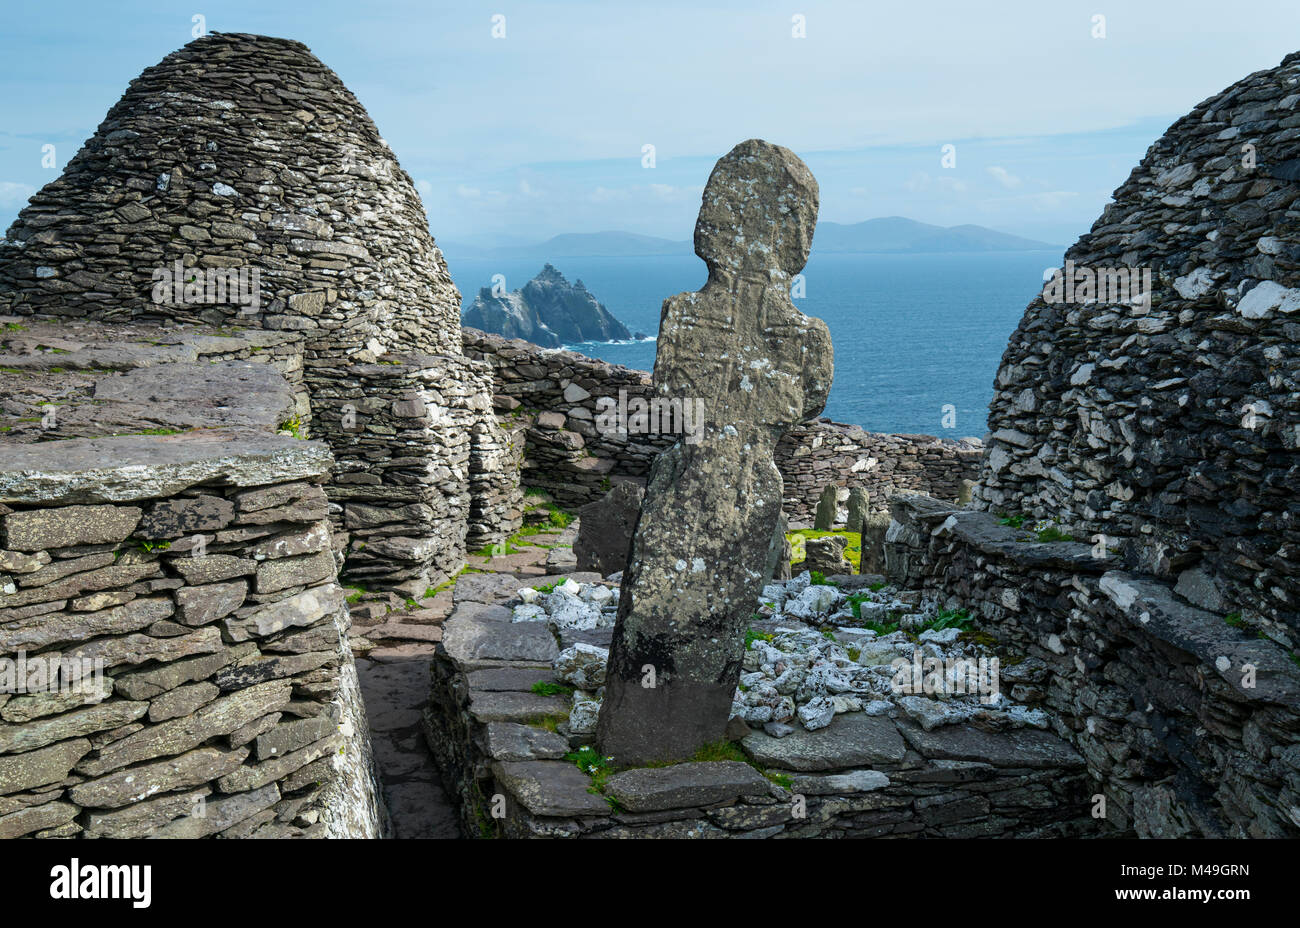 Monastery on Skellig Michael, Skellig Islands World Heritage Site, County Kerry, Ireland, Europe. September 2015. - Stock Image